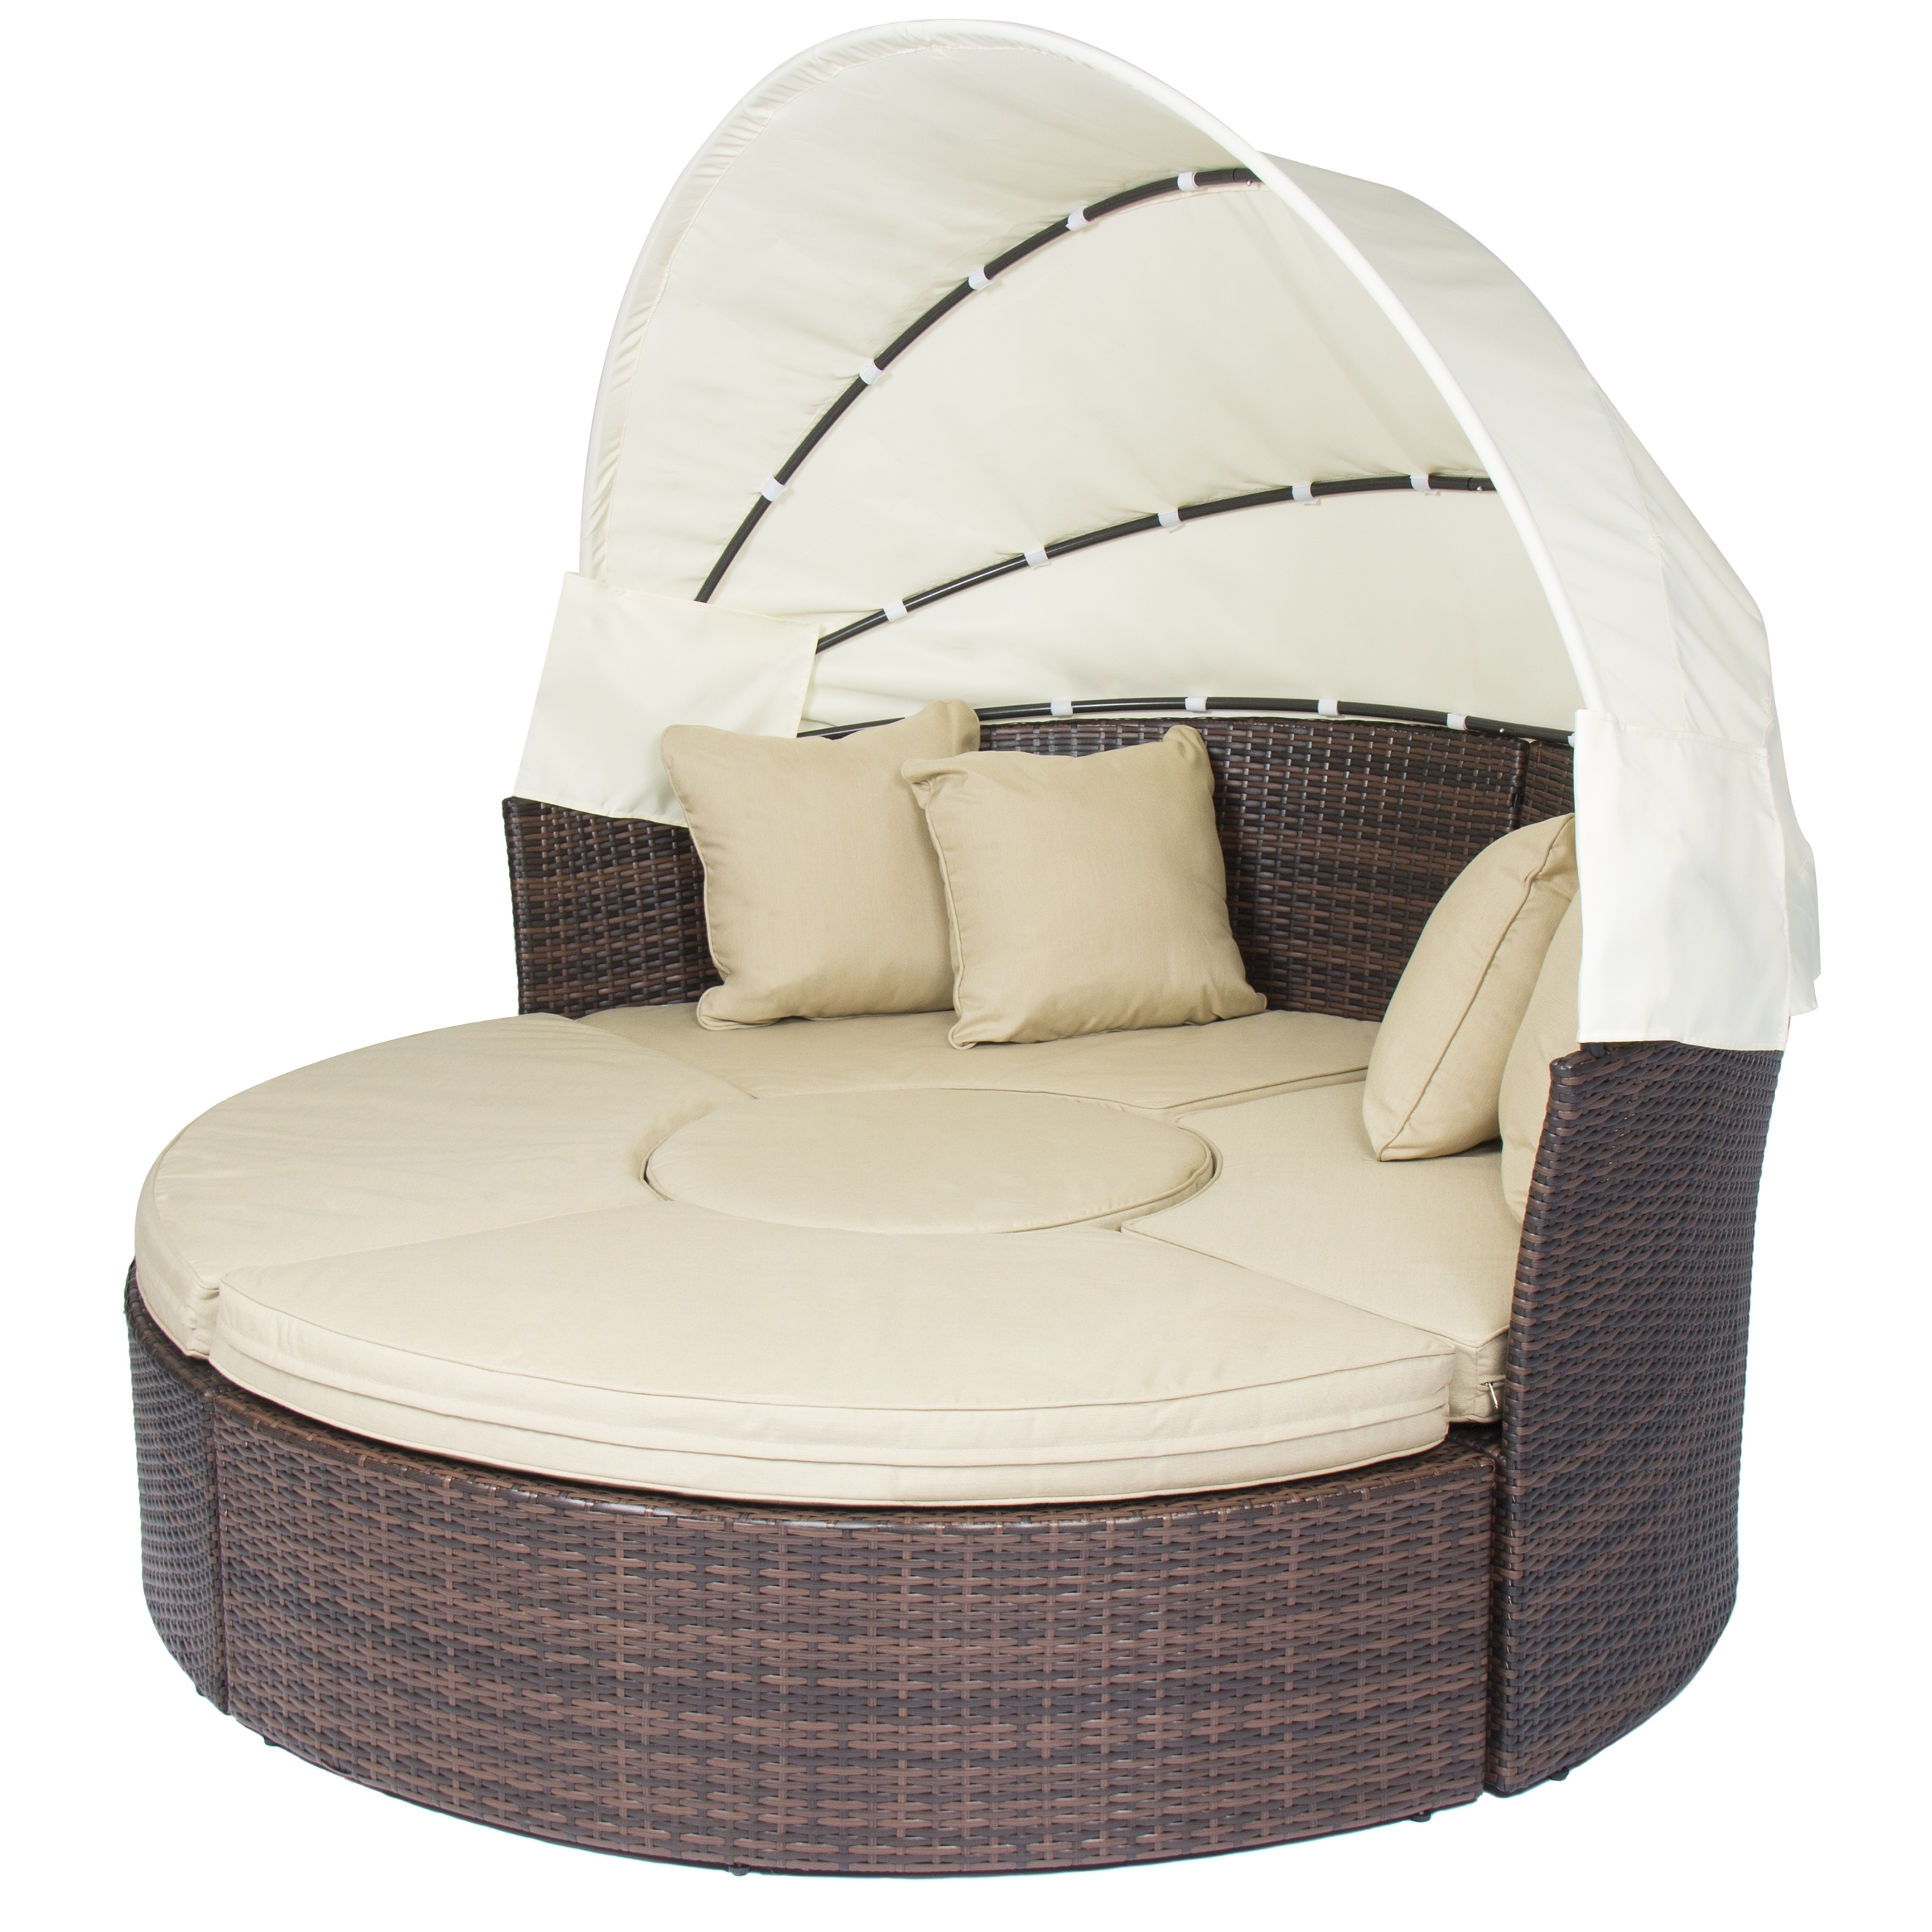 Preferred Outdoor Patio Sofa Furniture Round Retractable Canopy Daybed Brown With Outdoor Sofas With Canopy (View 13 of 20)